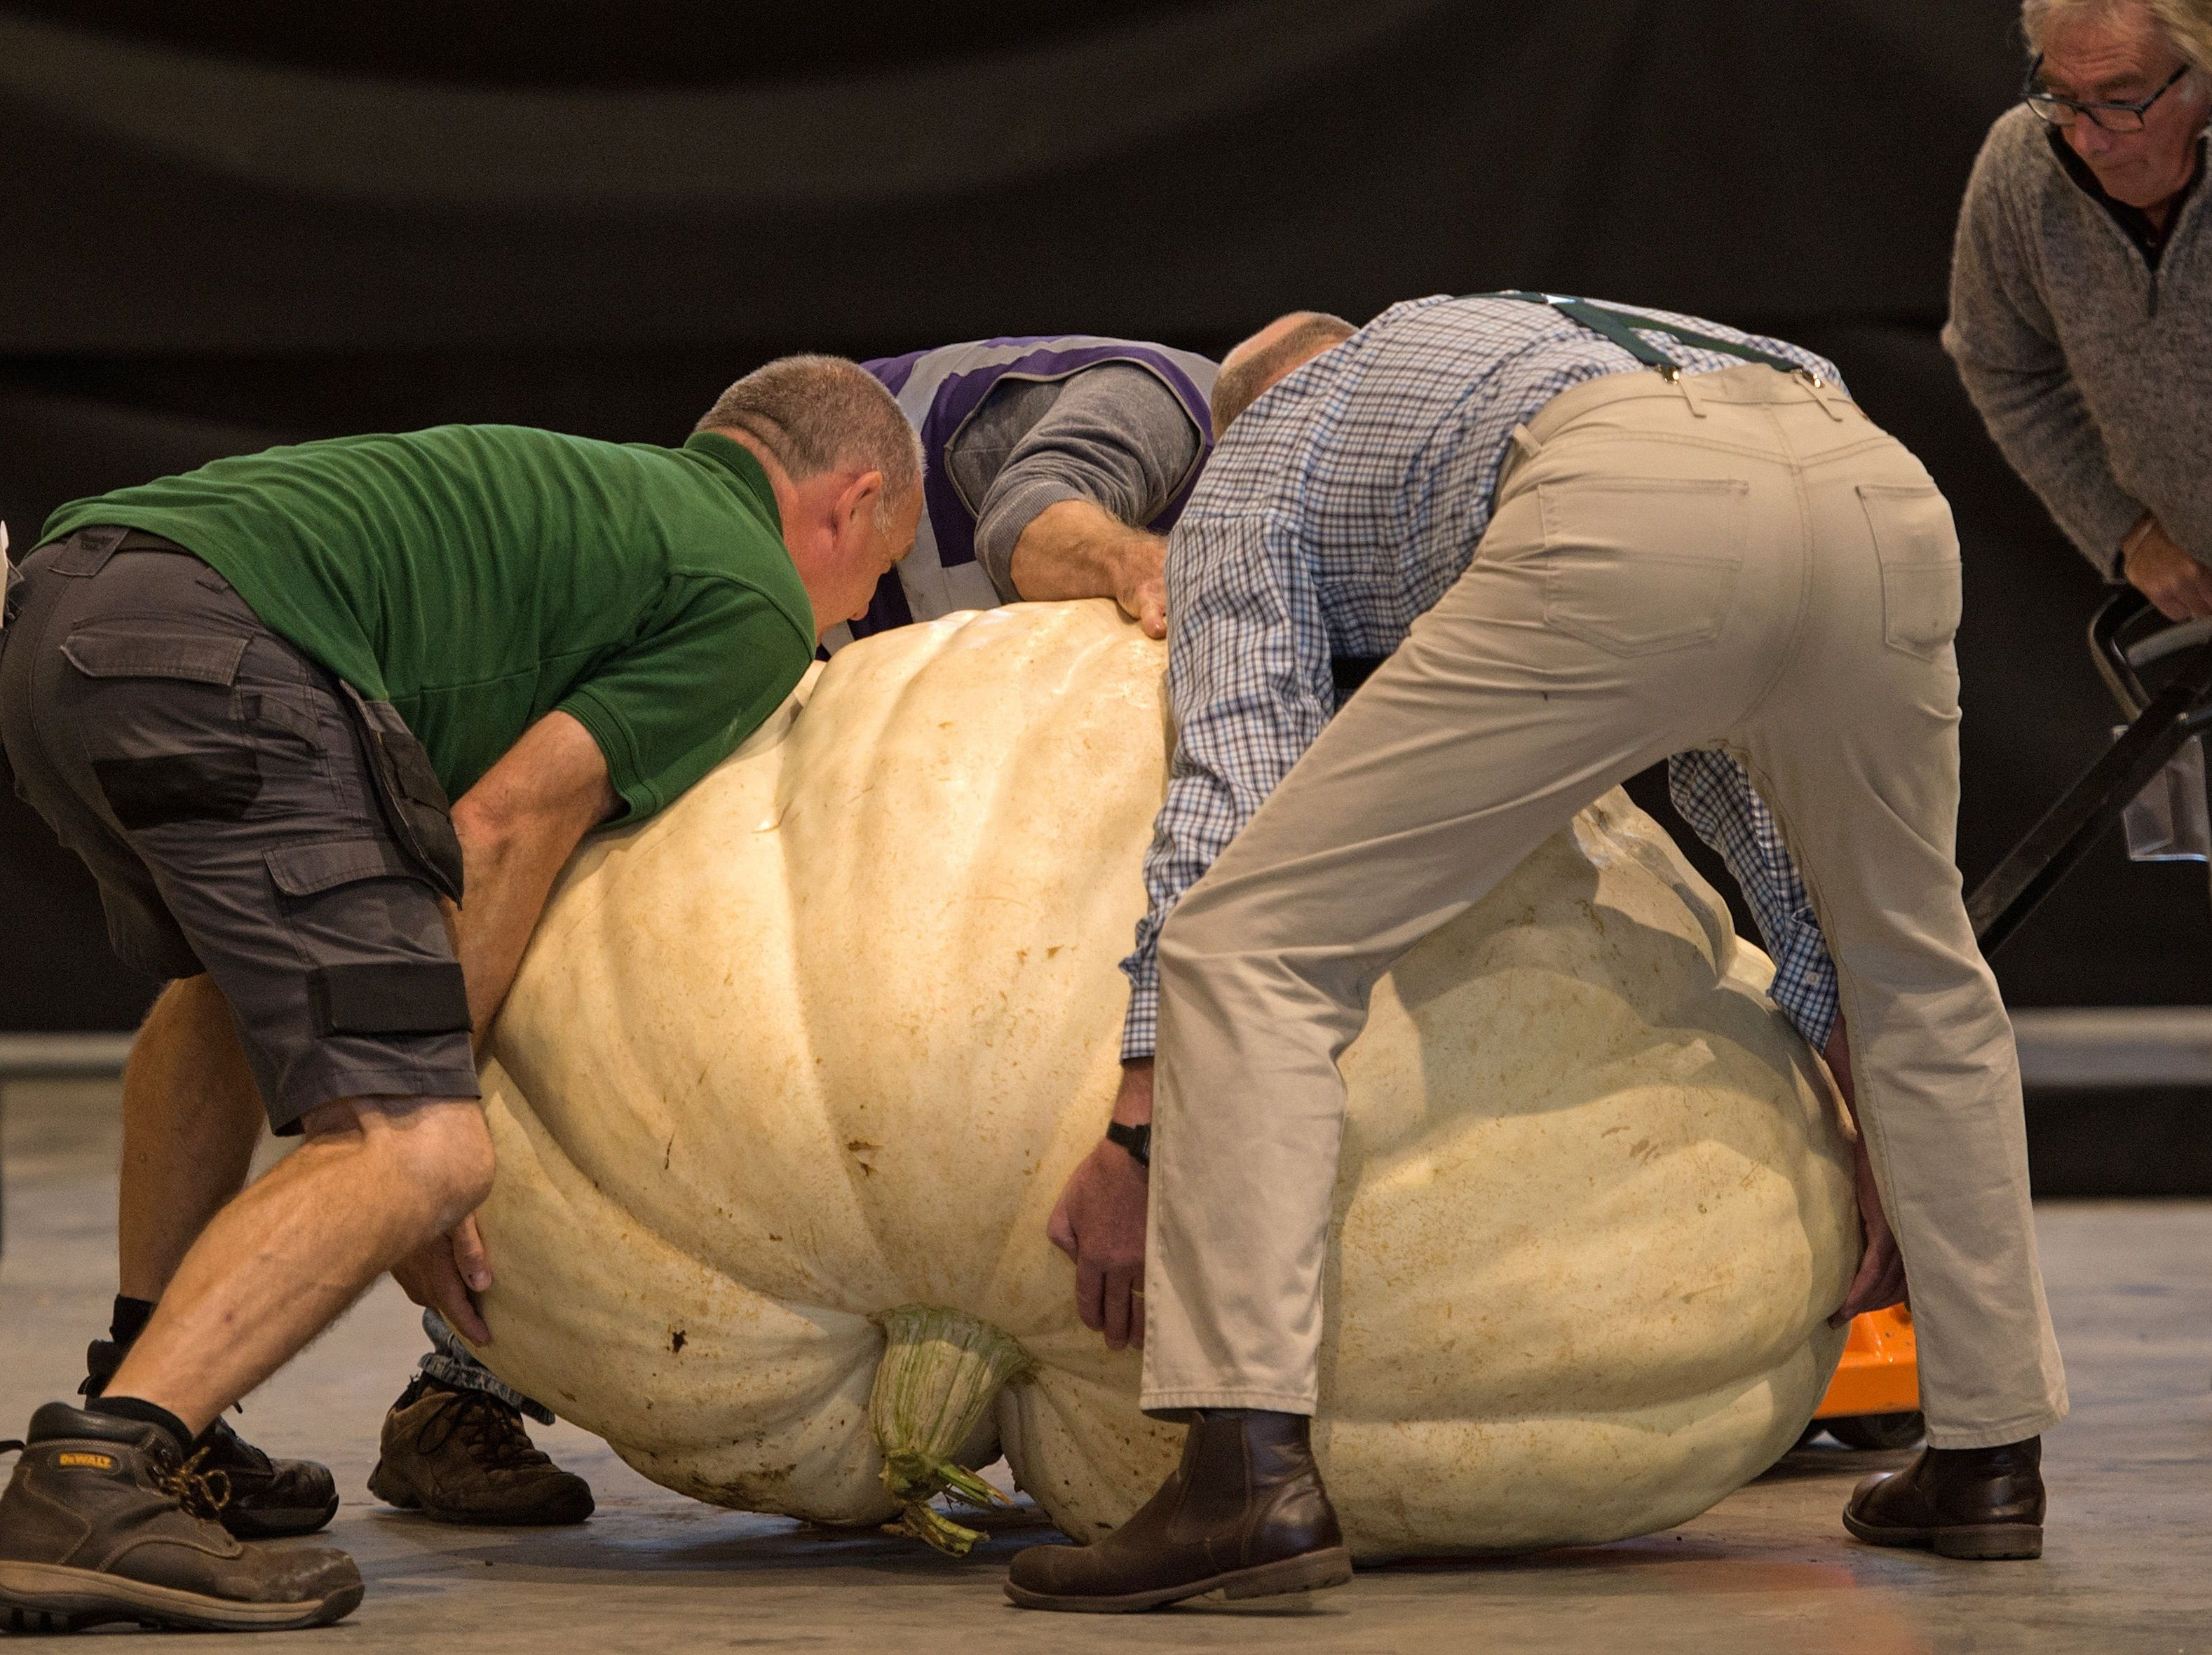 Show staff weigh pumpkins entered into the giant pumpkin competition on the first day of the Harrogate Autumn Flower Show held at the Great Yorkshire Showground, in Harrogate, northern England, on September 14, 2018. (Photo by OLI SCARFF / AFP)OLI SCARFF/AFP/Getty Images ORG XMIT: 5387 ORIG FILE ID: AFP_1935IP